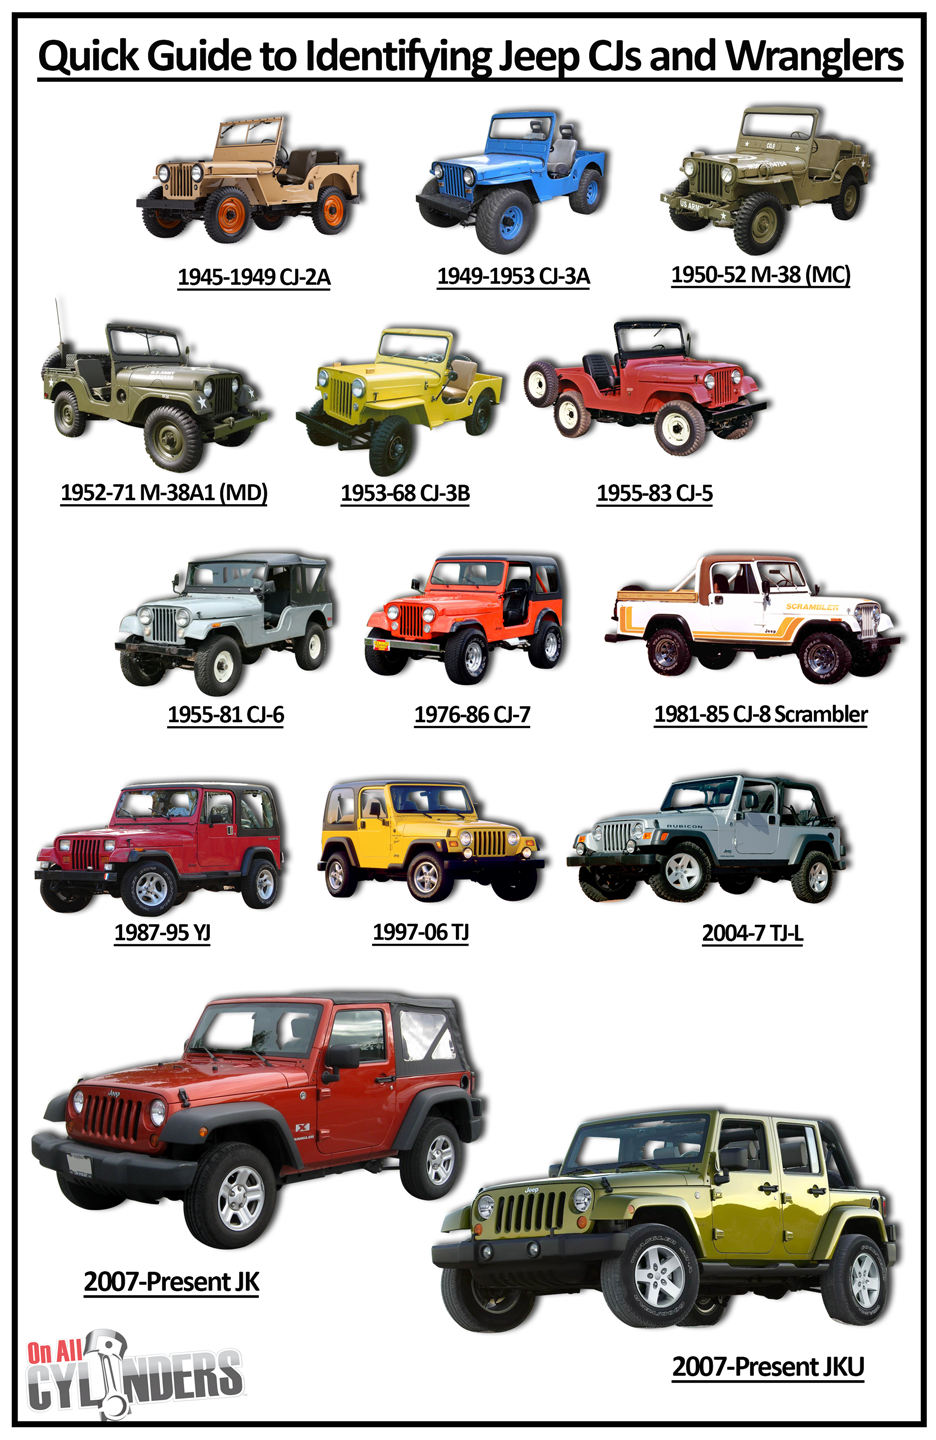 Dallas Auto Show >> Ride Guides: A Quick Guide to Identifying Jeep CJs and 1987-2018 Wranglers - OnAllCylinders